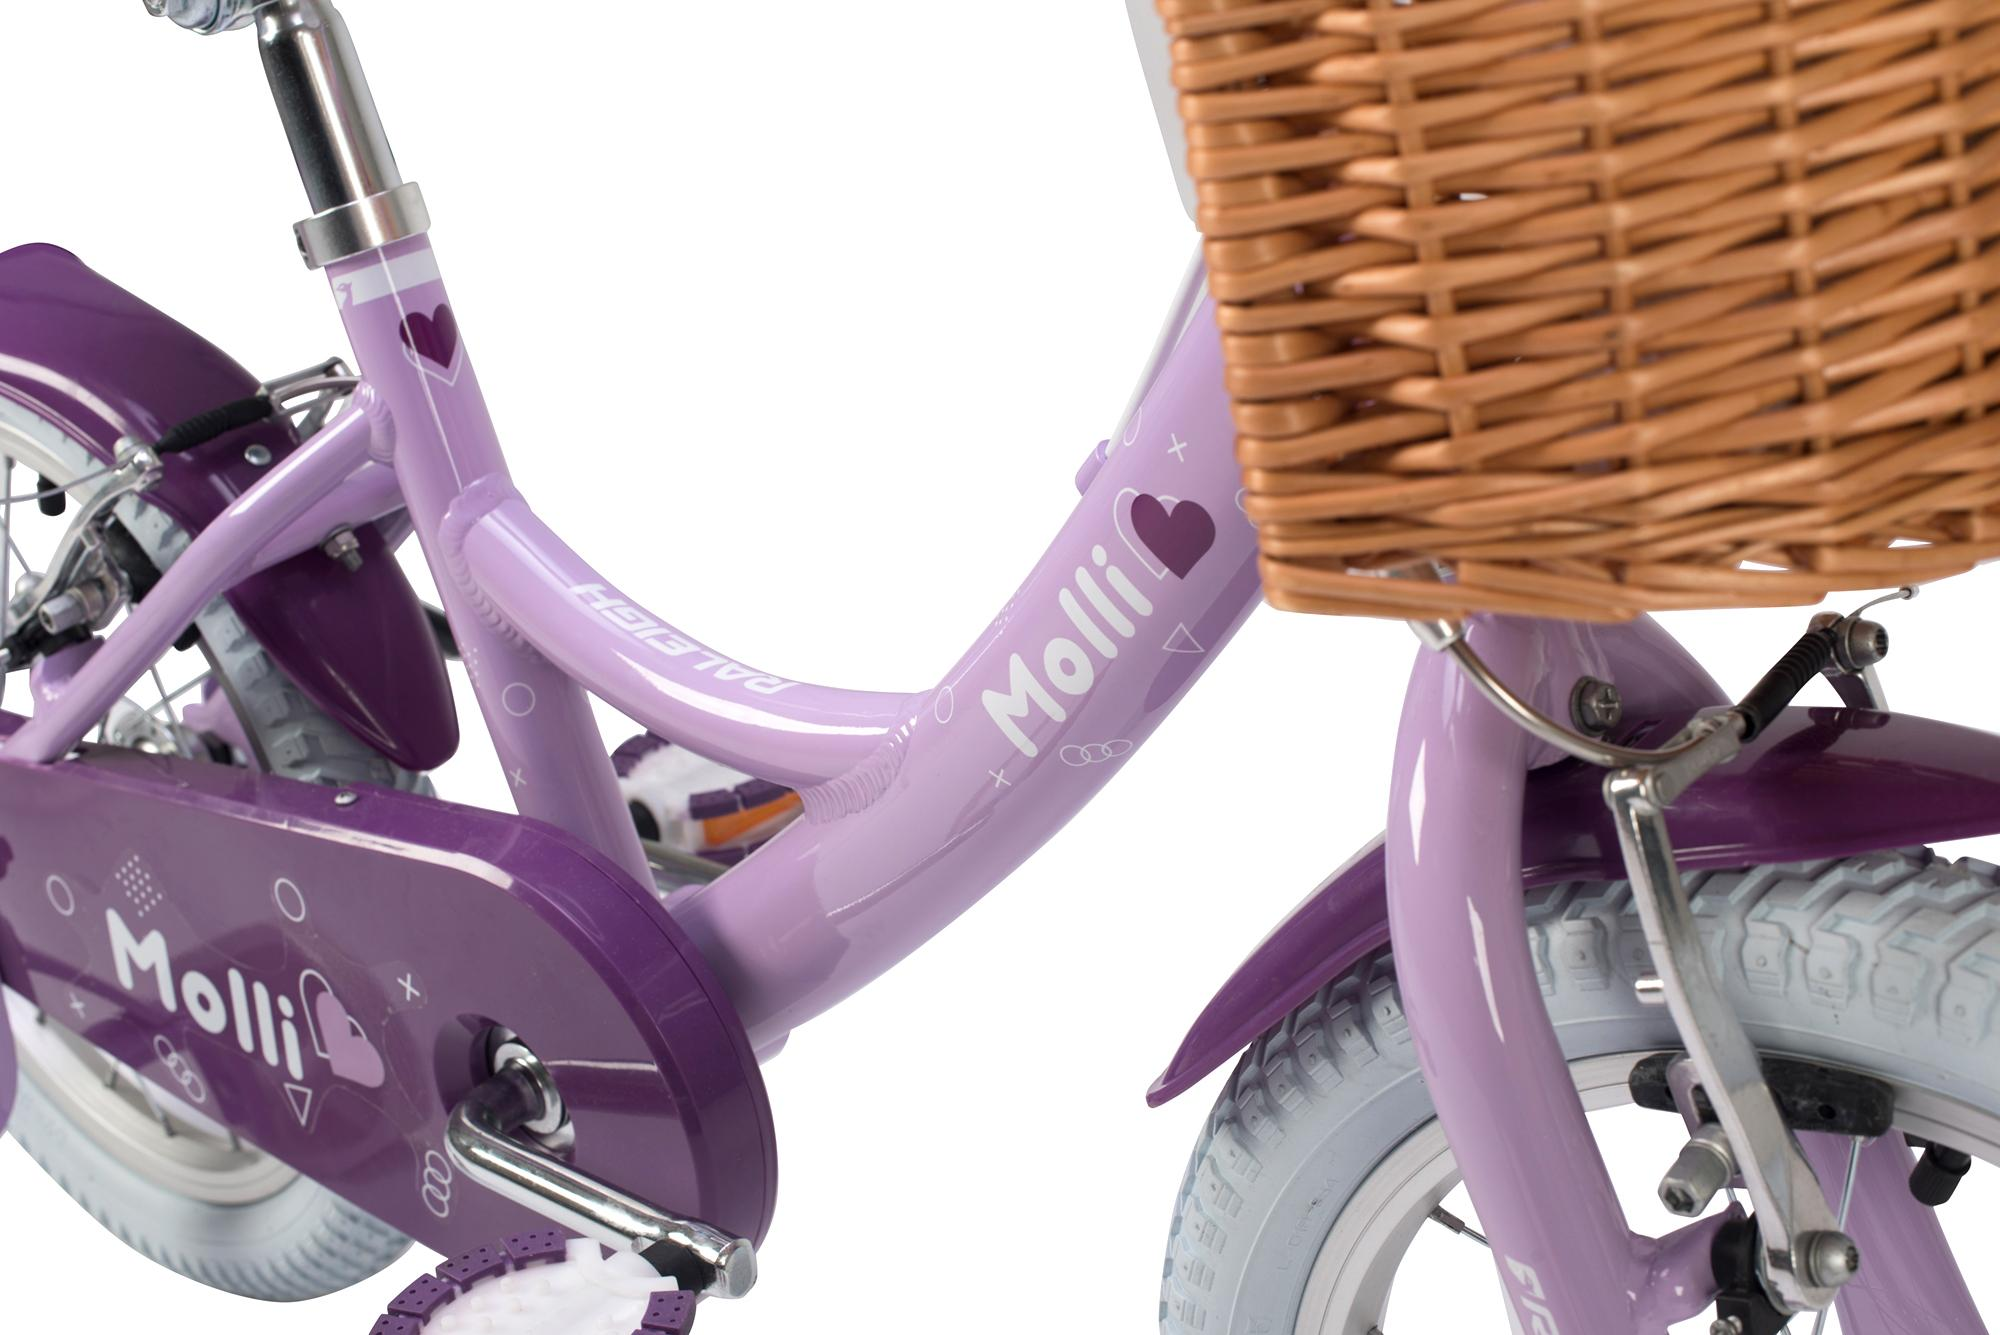 Detail view of Raleigh Molli 16 inch kids girls bike with stabilisers